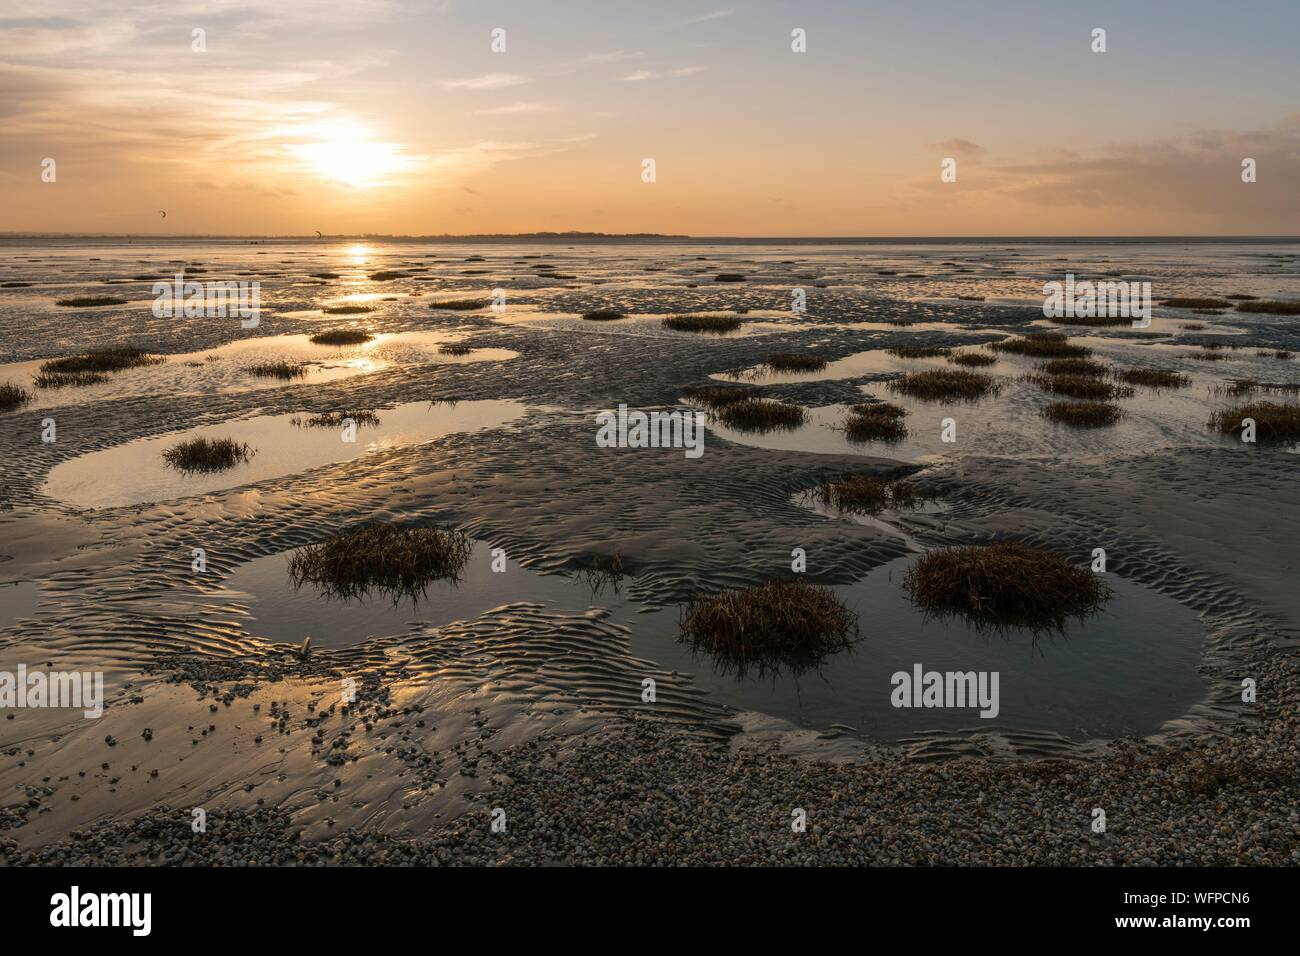 France, Somme, Somme Bay, Crotoy Beach, Tufts of Townsend Spartine (Spartina townsendii); from the Crotoy beach we measure the silting of the Somme Bay and the progression of colonizing pioneer plants Stock Photo